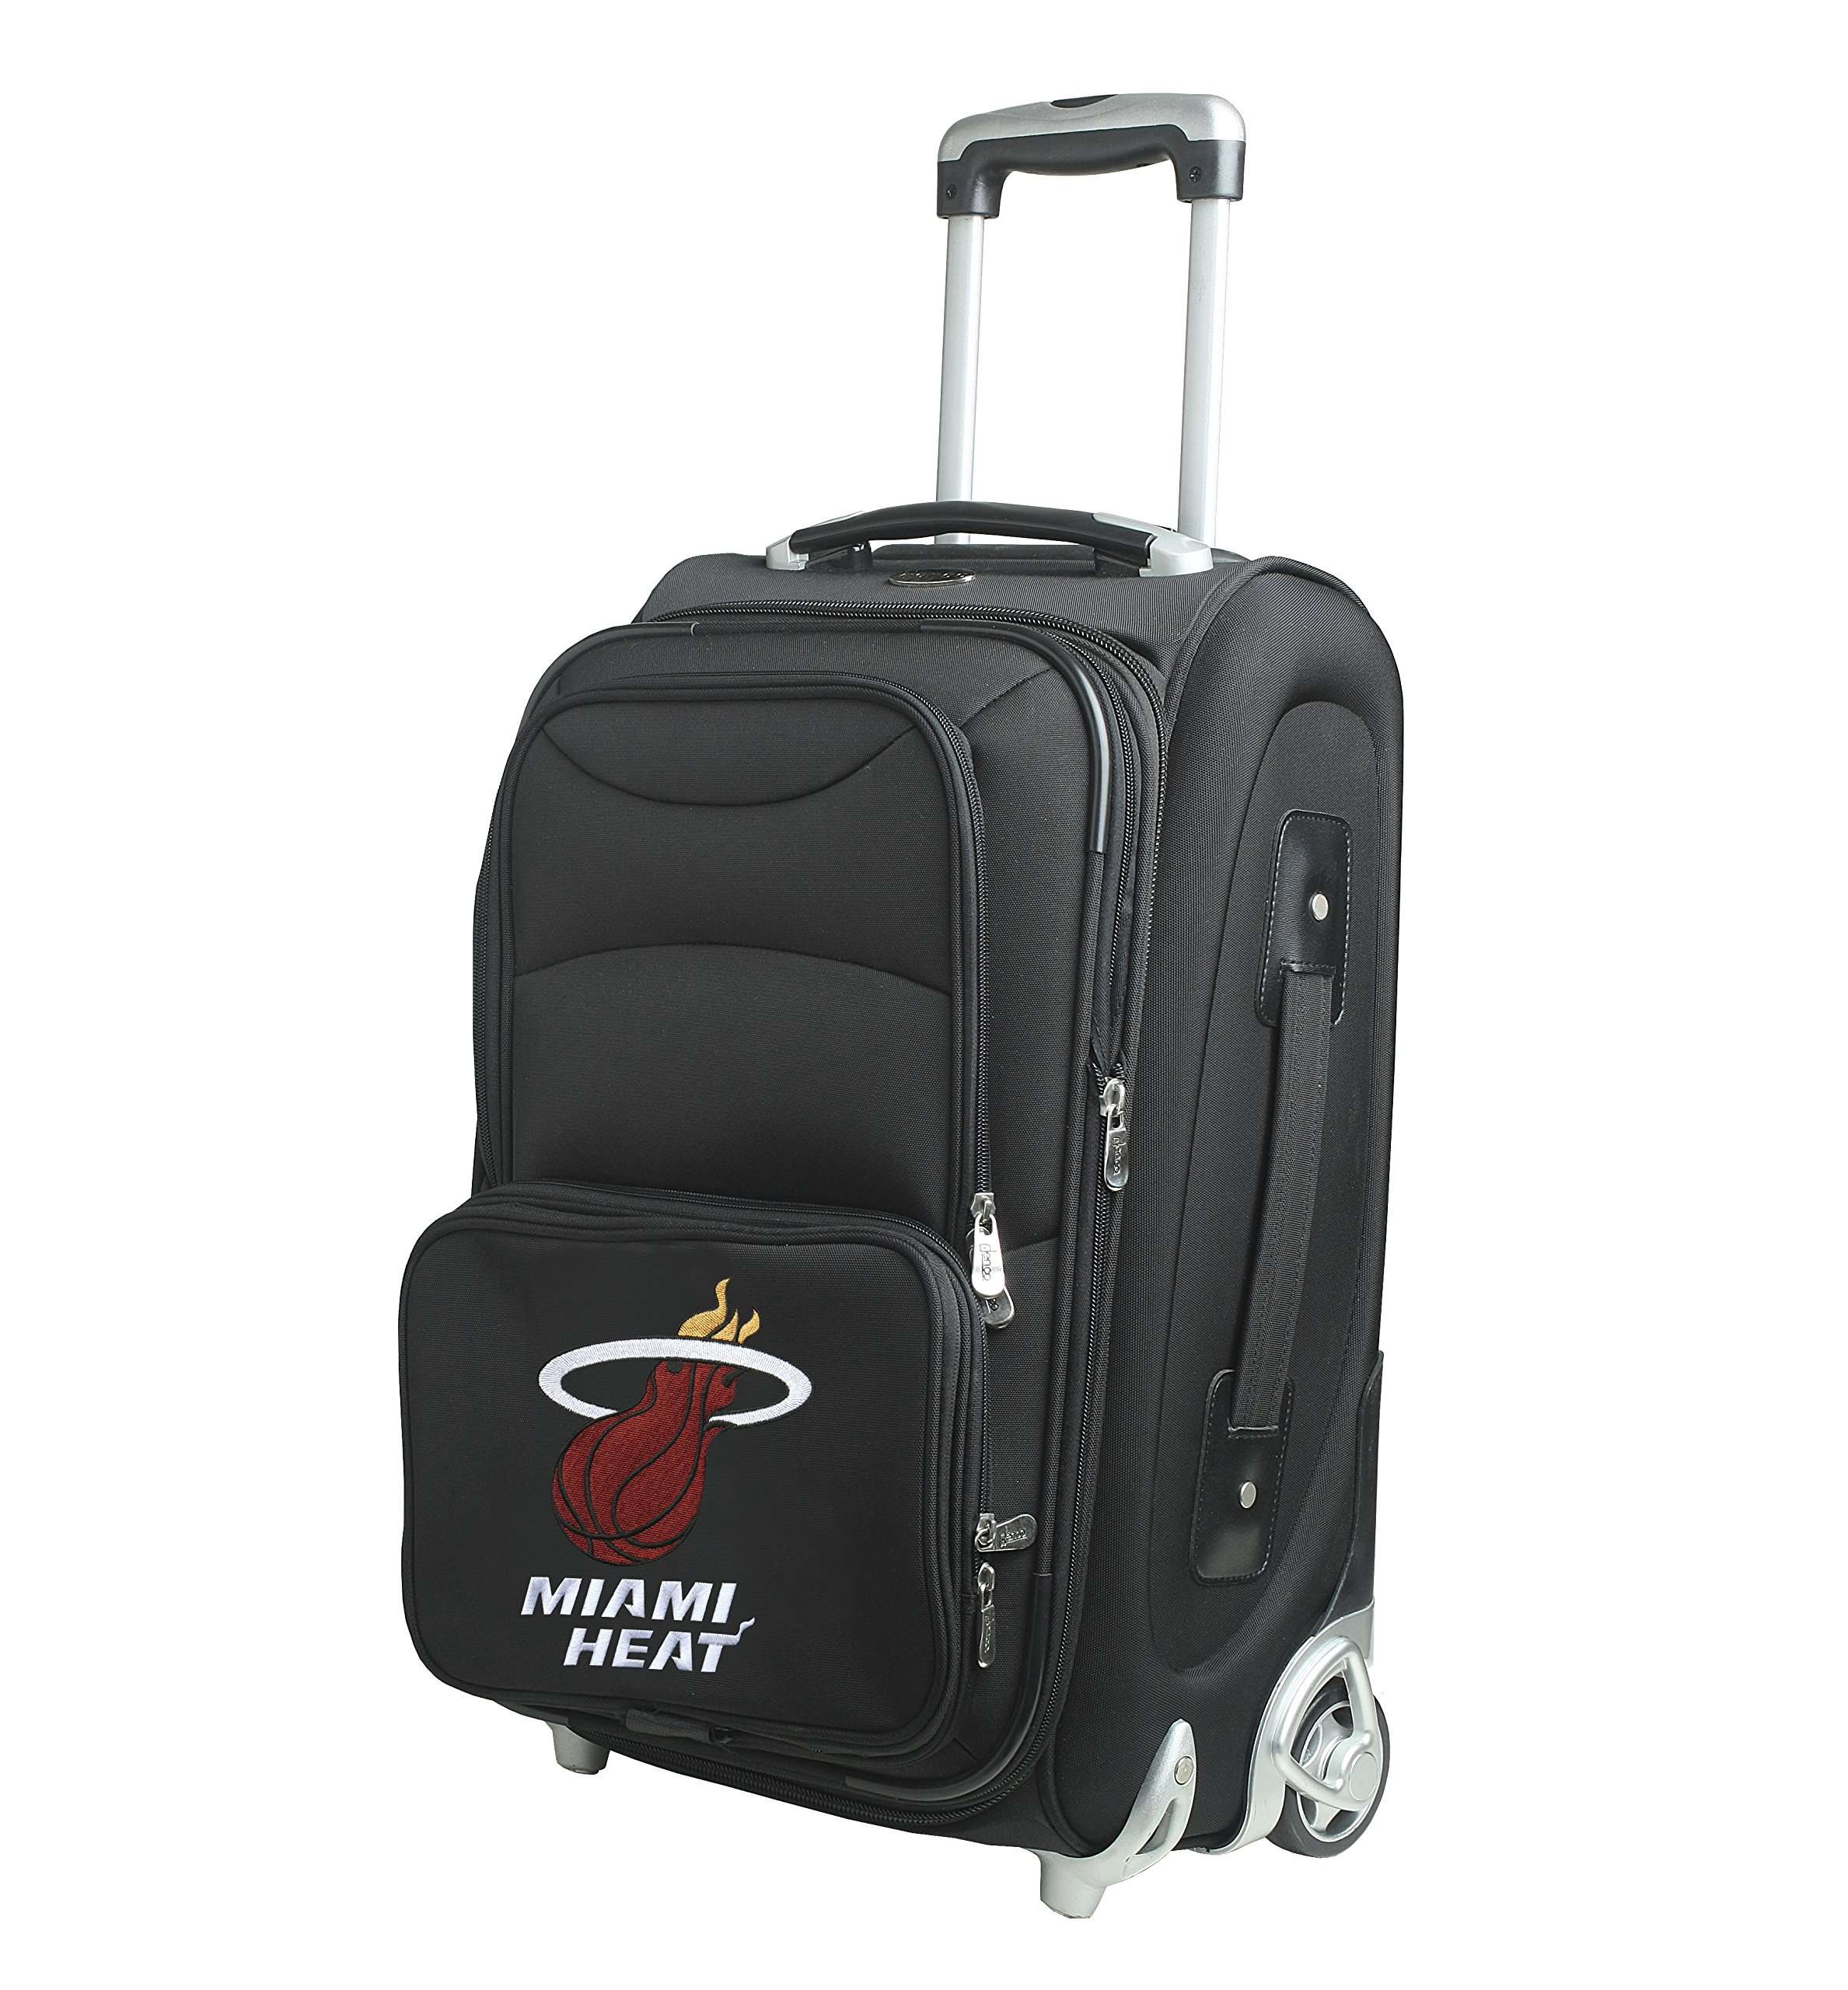 NBA Miami Heat In-Line Skate Wheel Carry-On Luggage, 21-Inch, Black